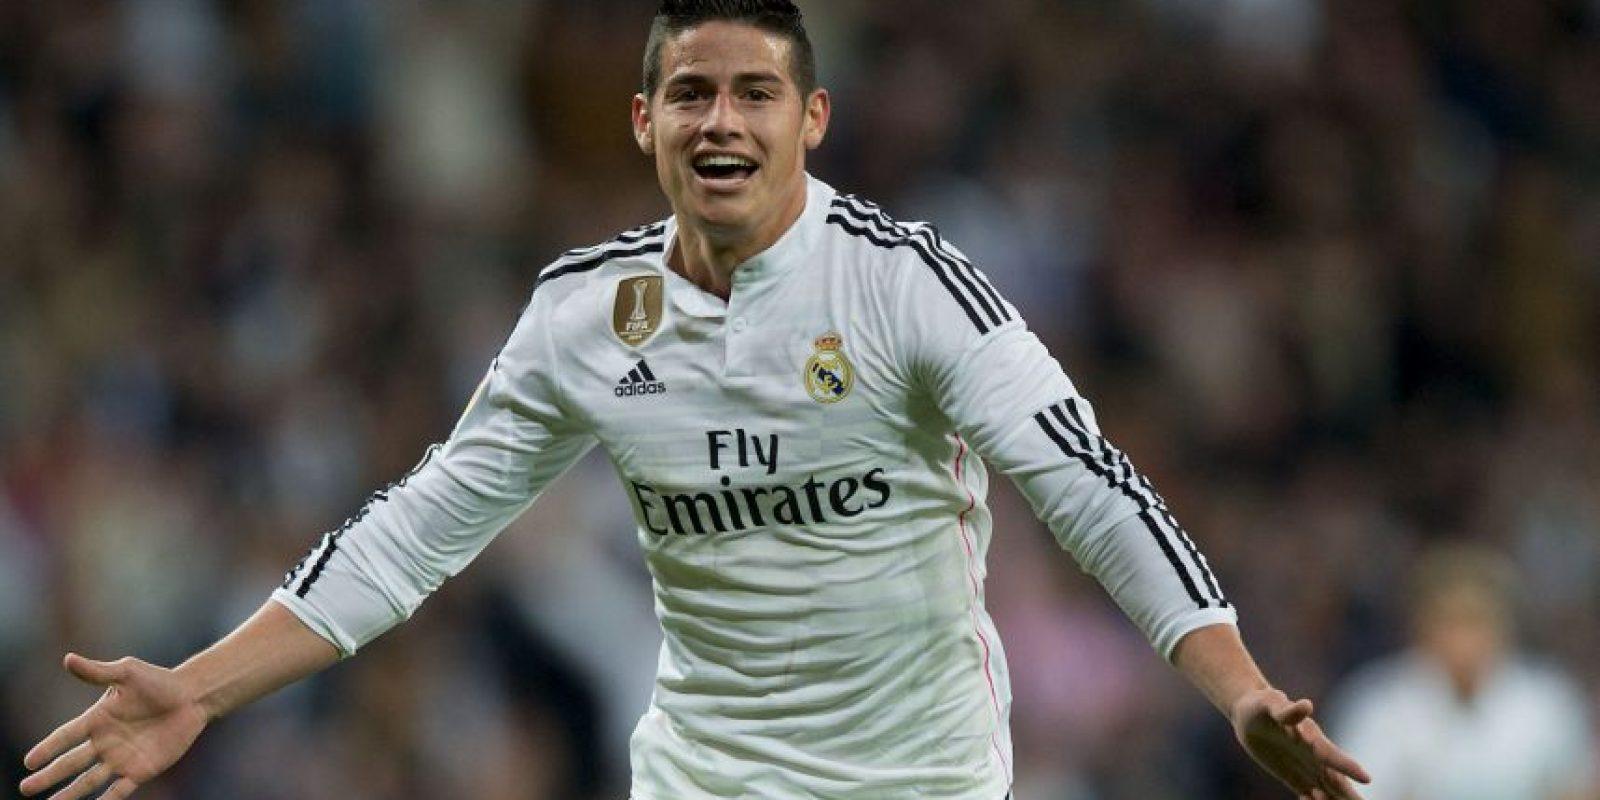 5. James Rodríguez: 6 millones de euros. Foto: Getty Images